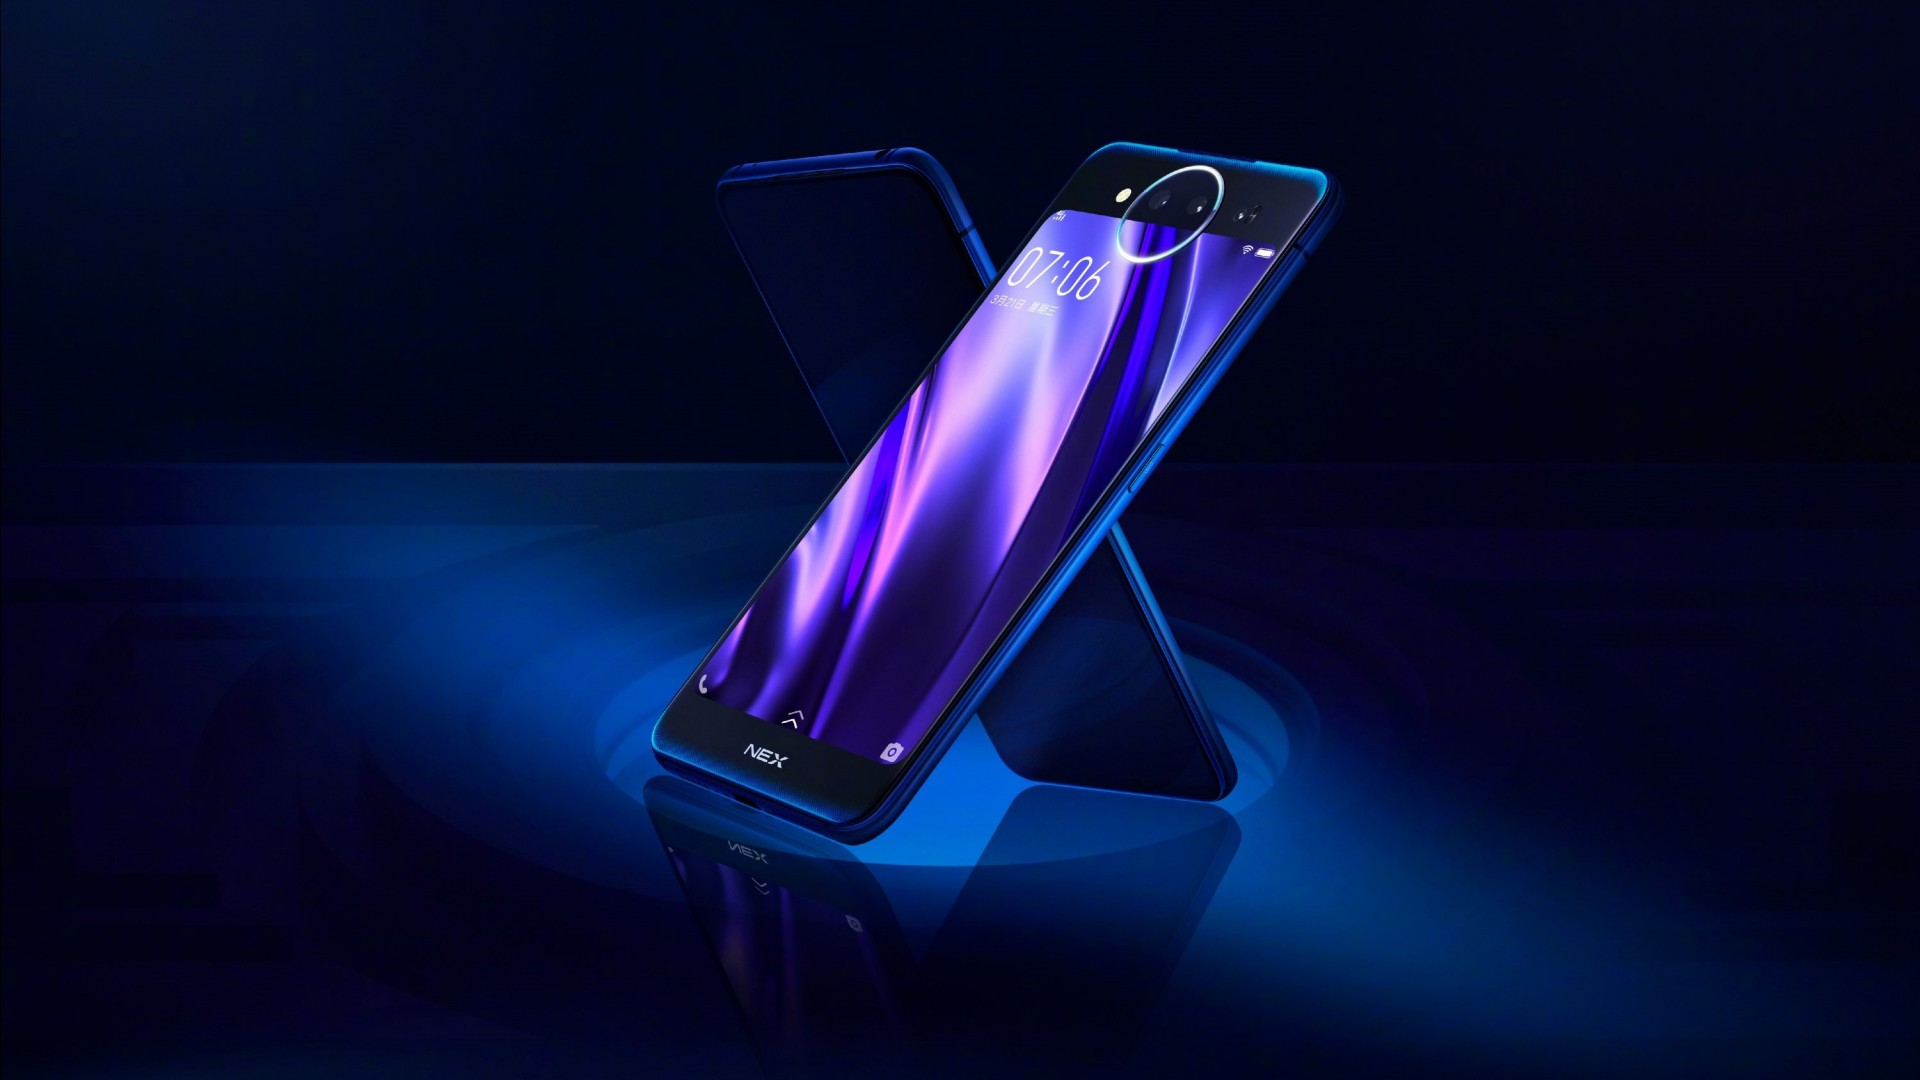 Wallpaper Vivo NEX Dual Display Edition, HD, Hi-Tech #20996